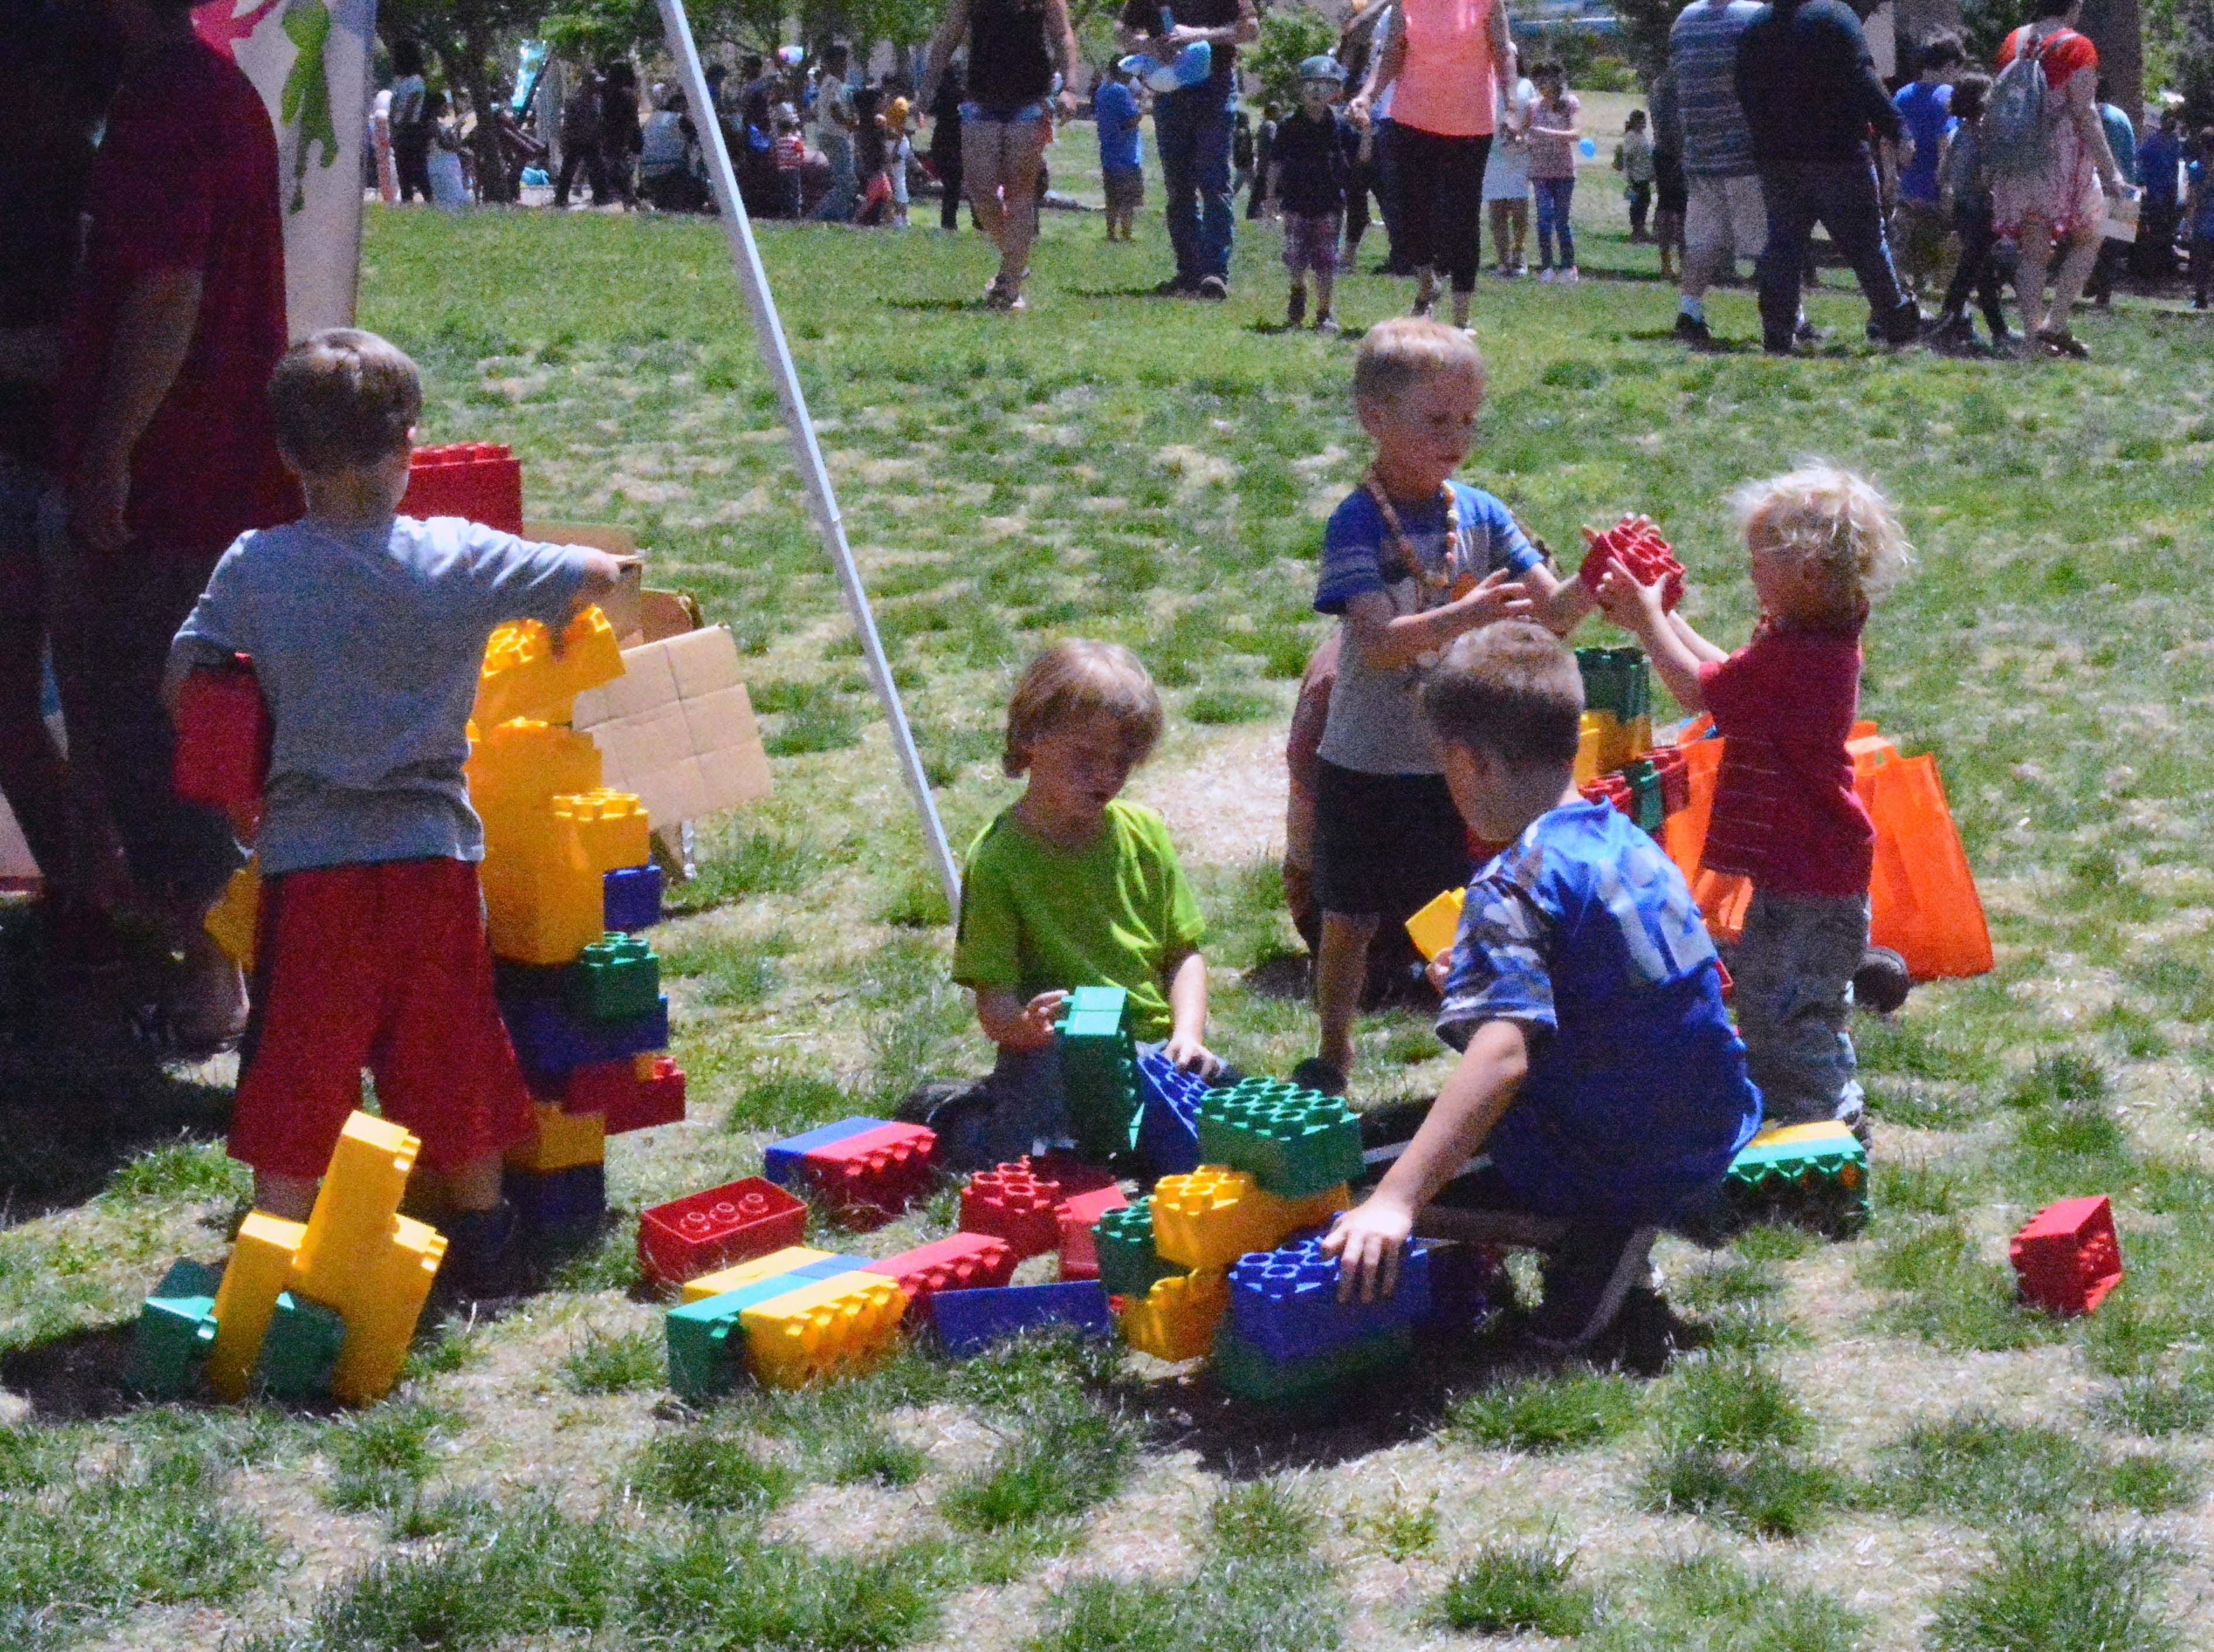 A group of kids enjoy playing with giant-size LEGOs during SpringFest at Young Park on Saturday, April 20, 2019.